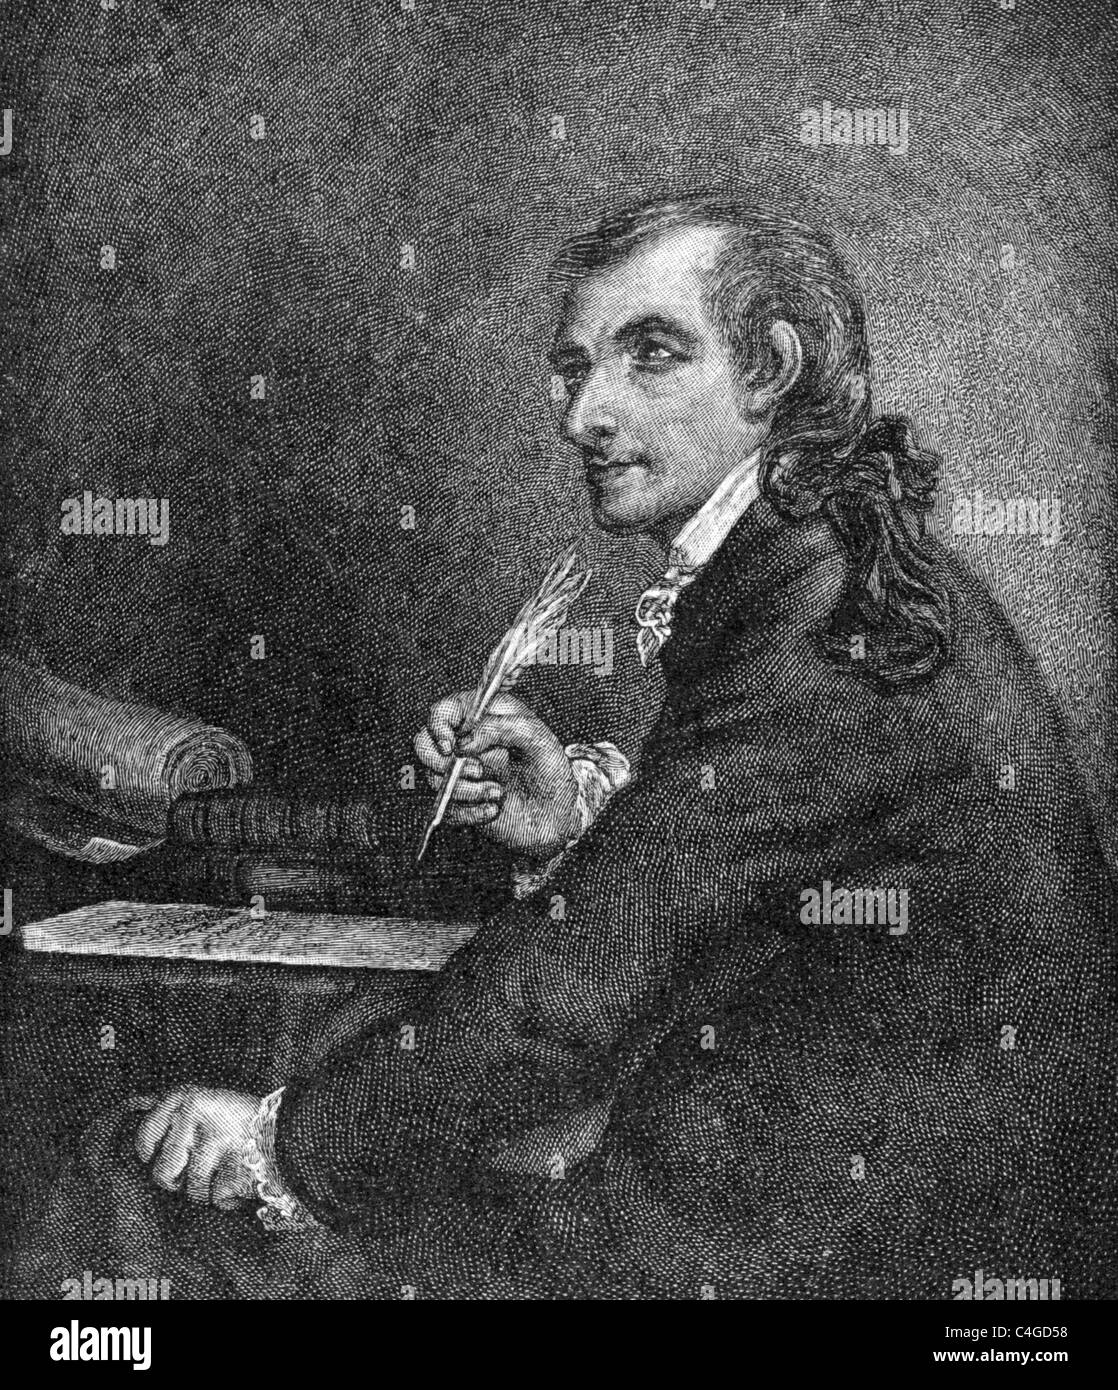 Francis Hopkinson (1737-1791) on engraving from 1800s. American author and one of the signers of the Declaration - Stock Image